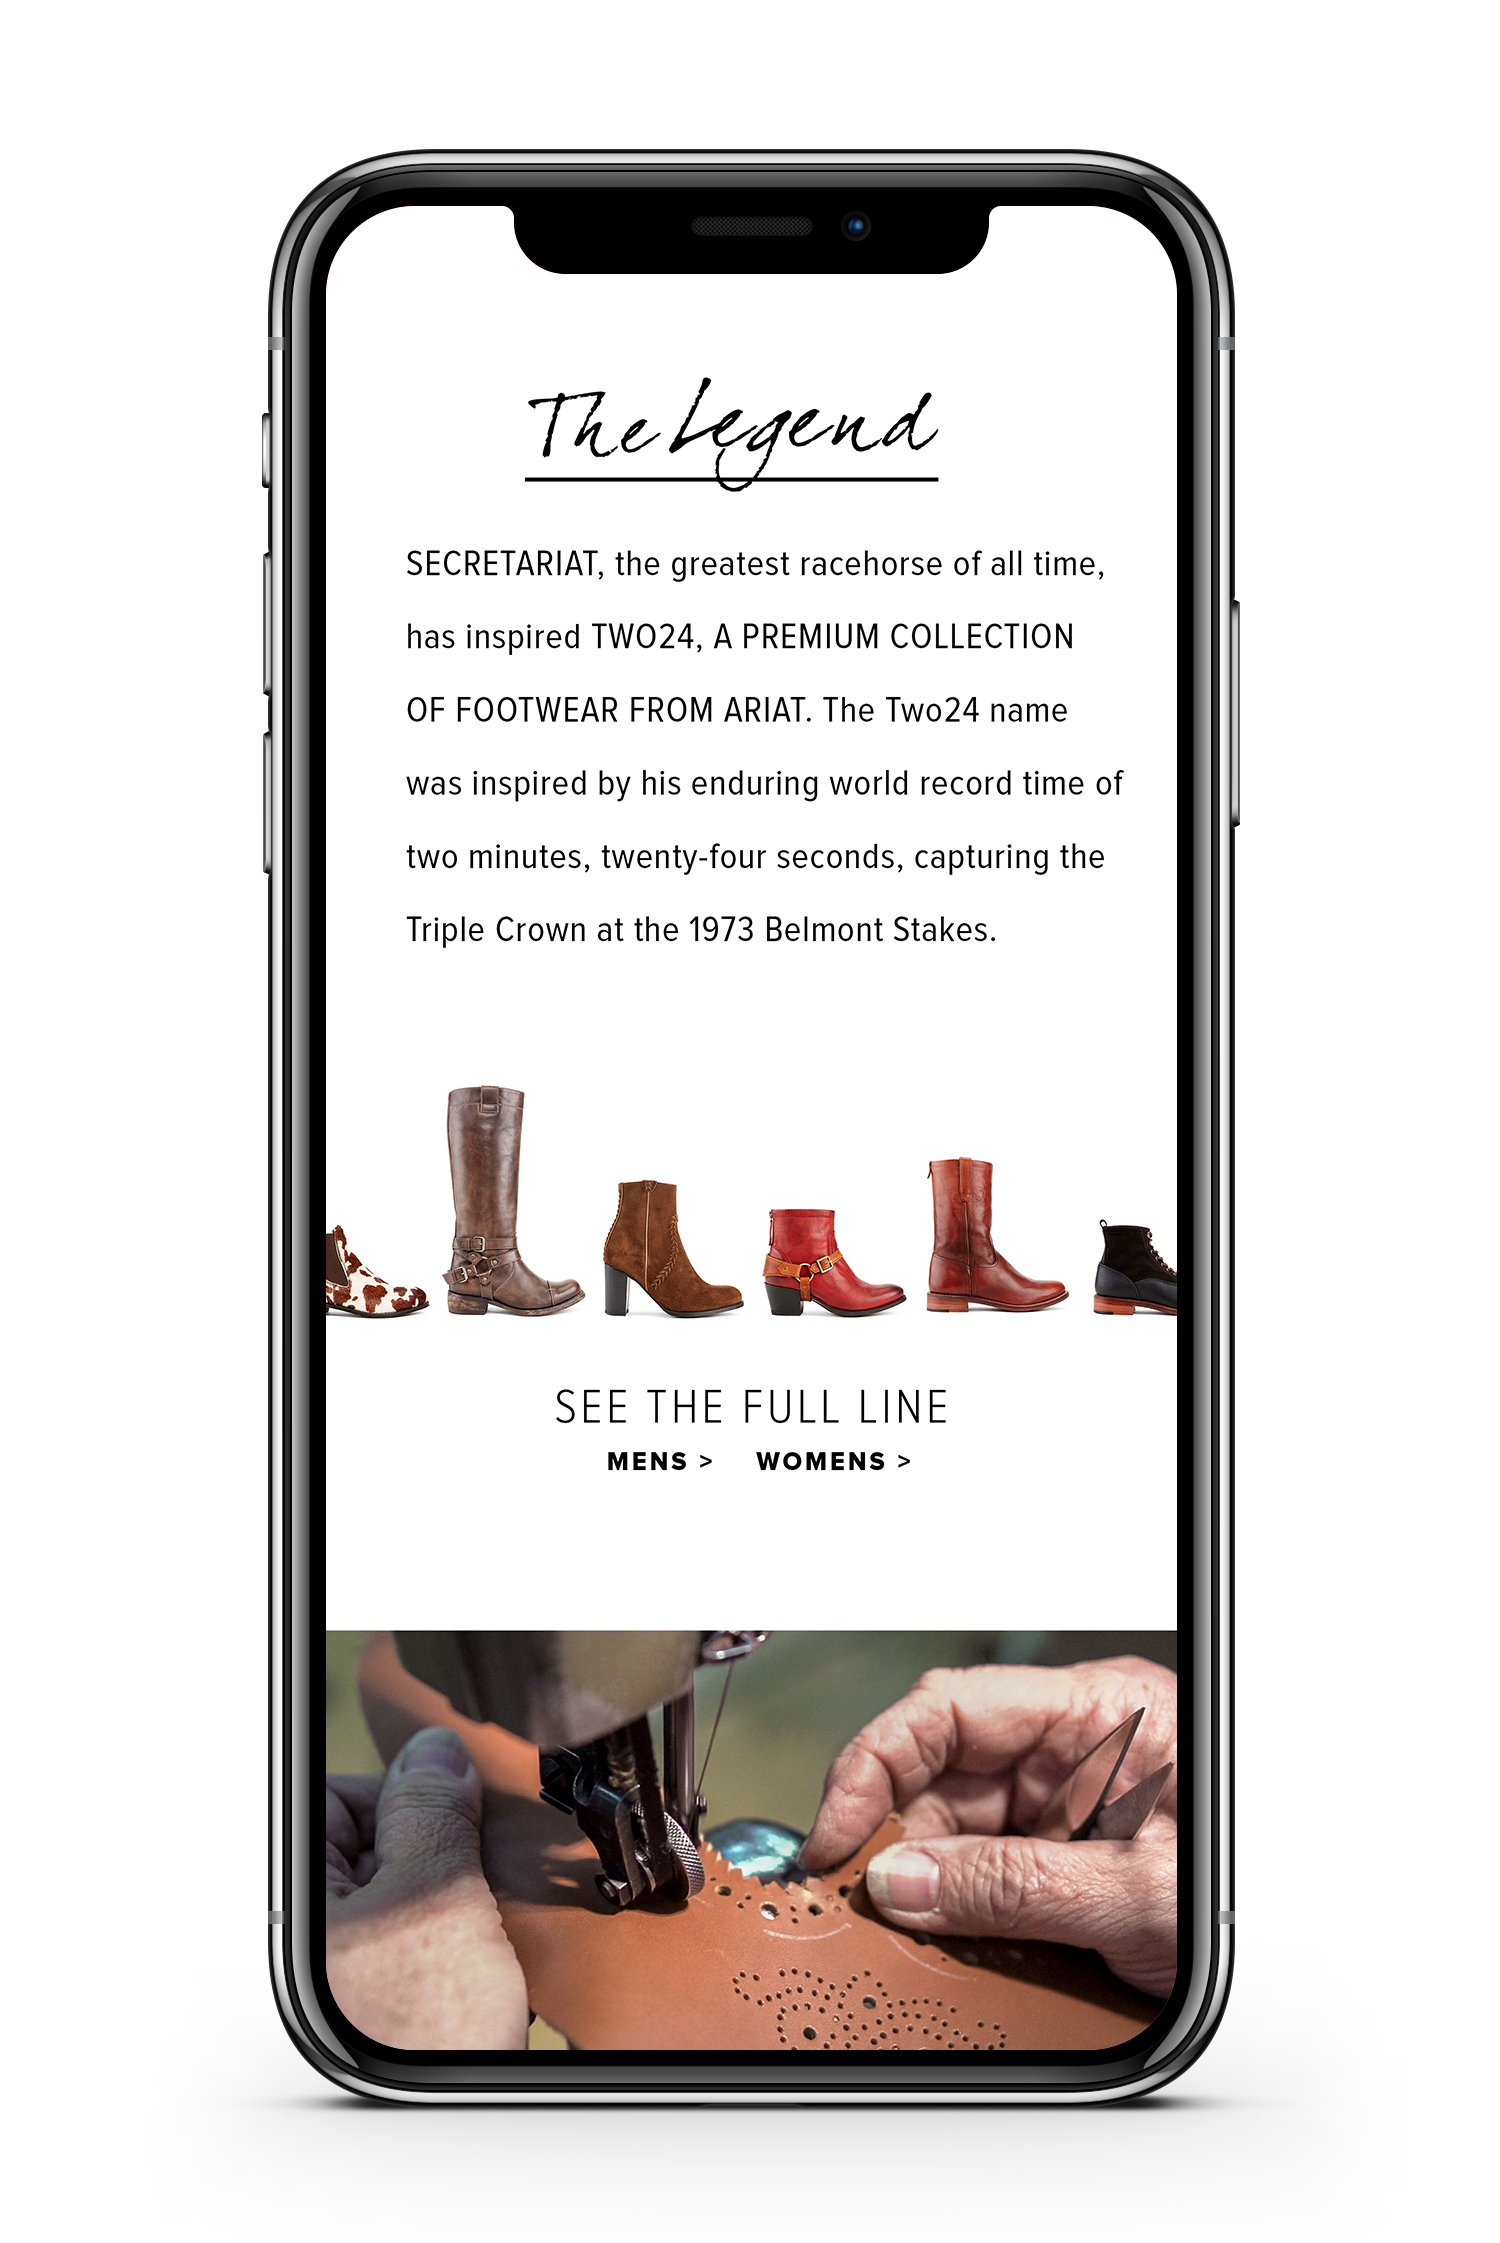 Ariat two 24 website displayed on smartphone showcasing the legend behind the brand